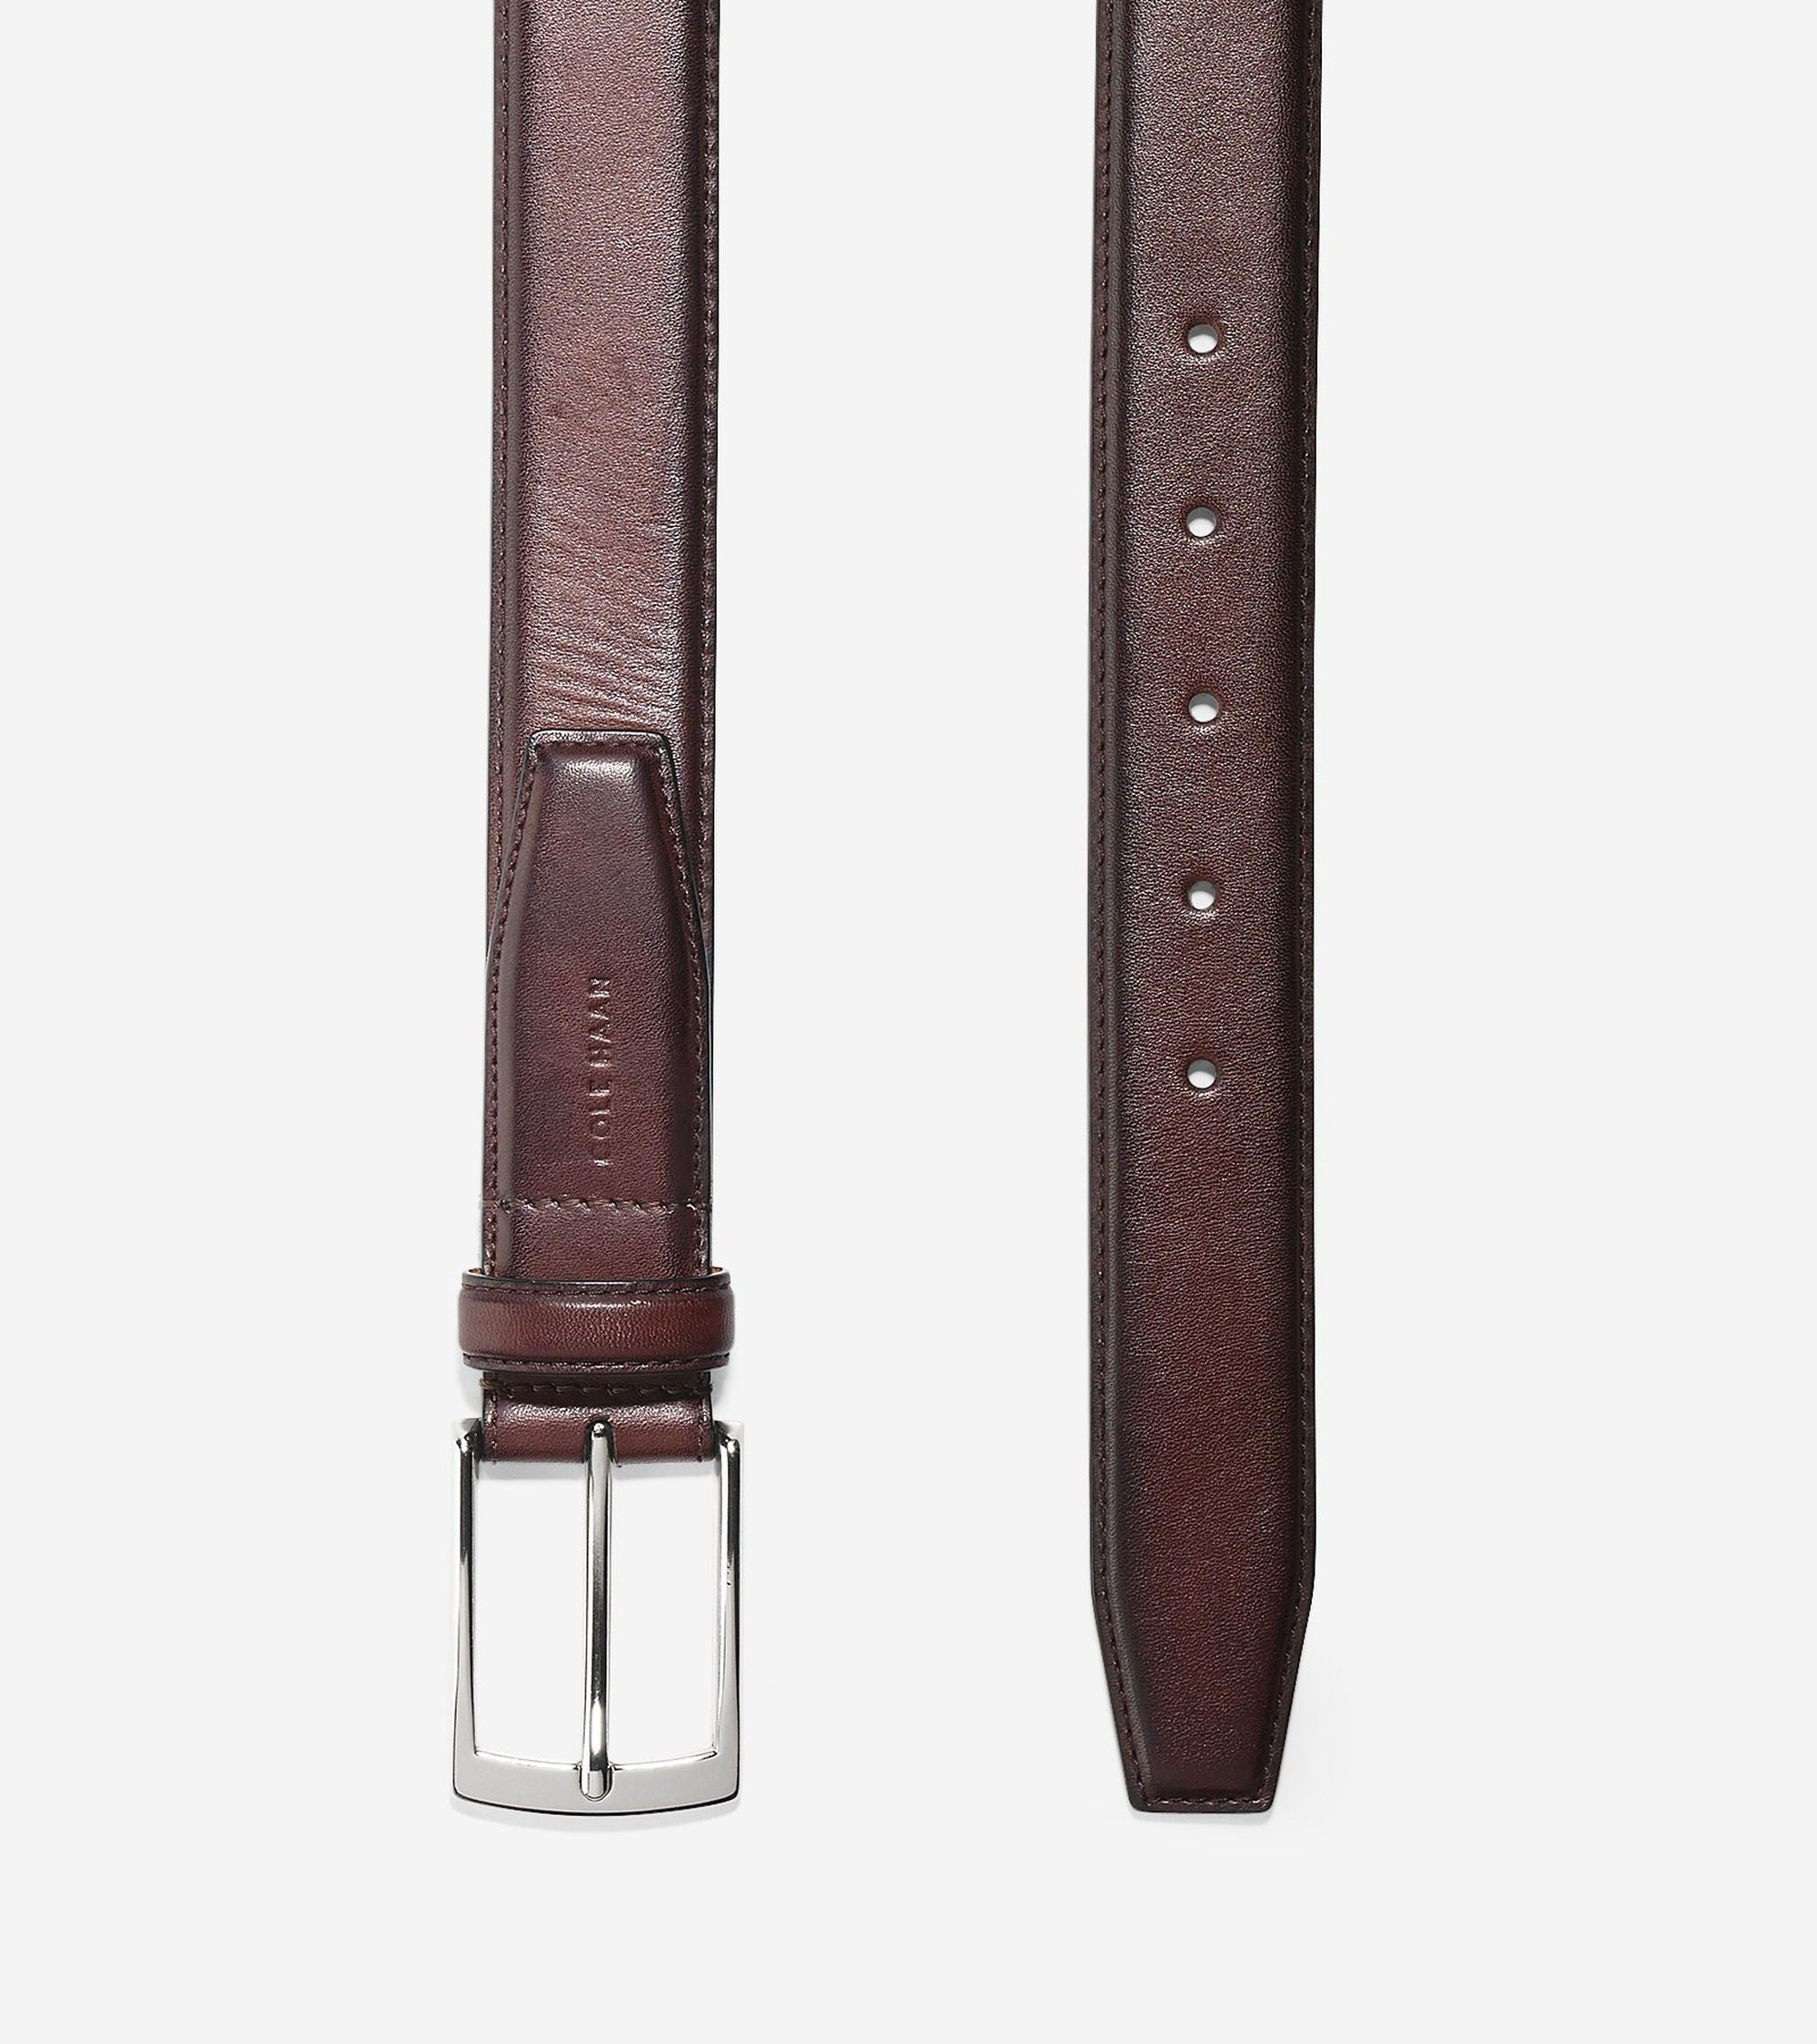 32mm Feather Edge Belt,BELT,Cole Haan, | GentRow.com